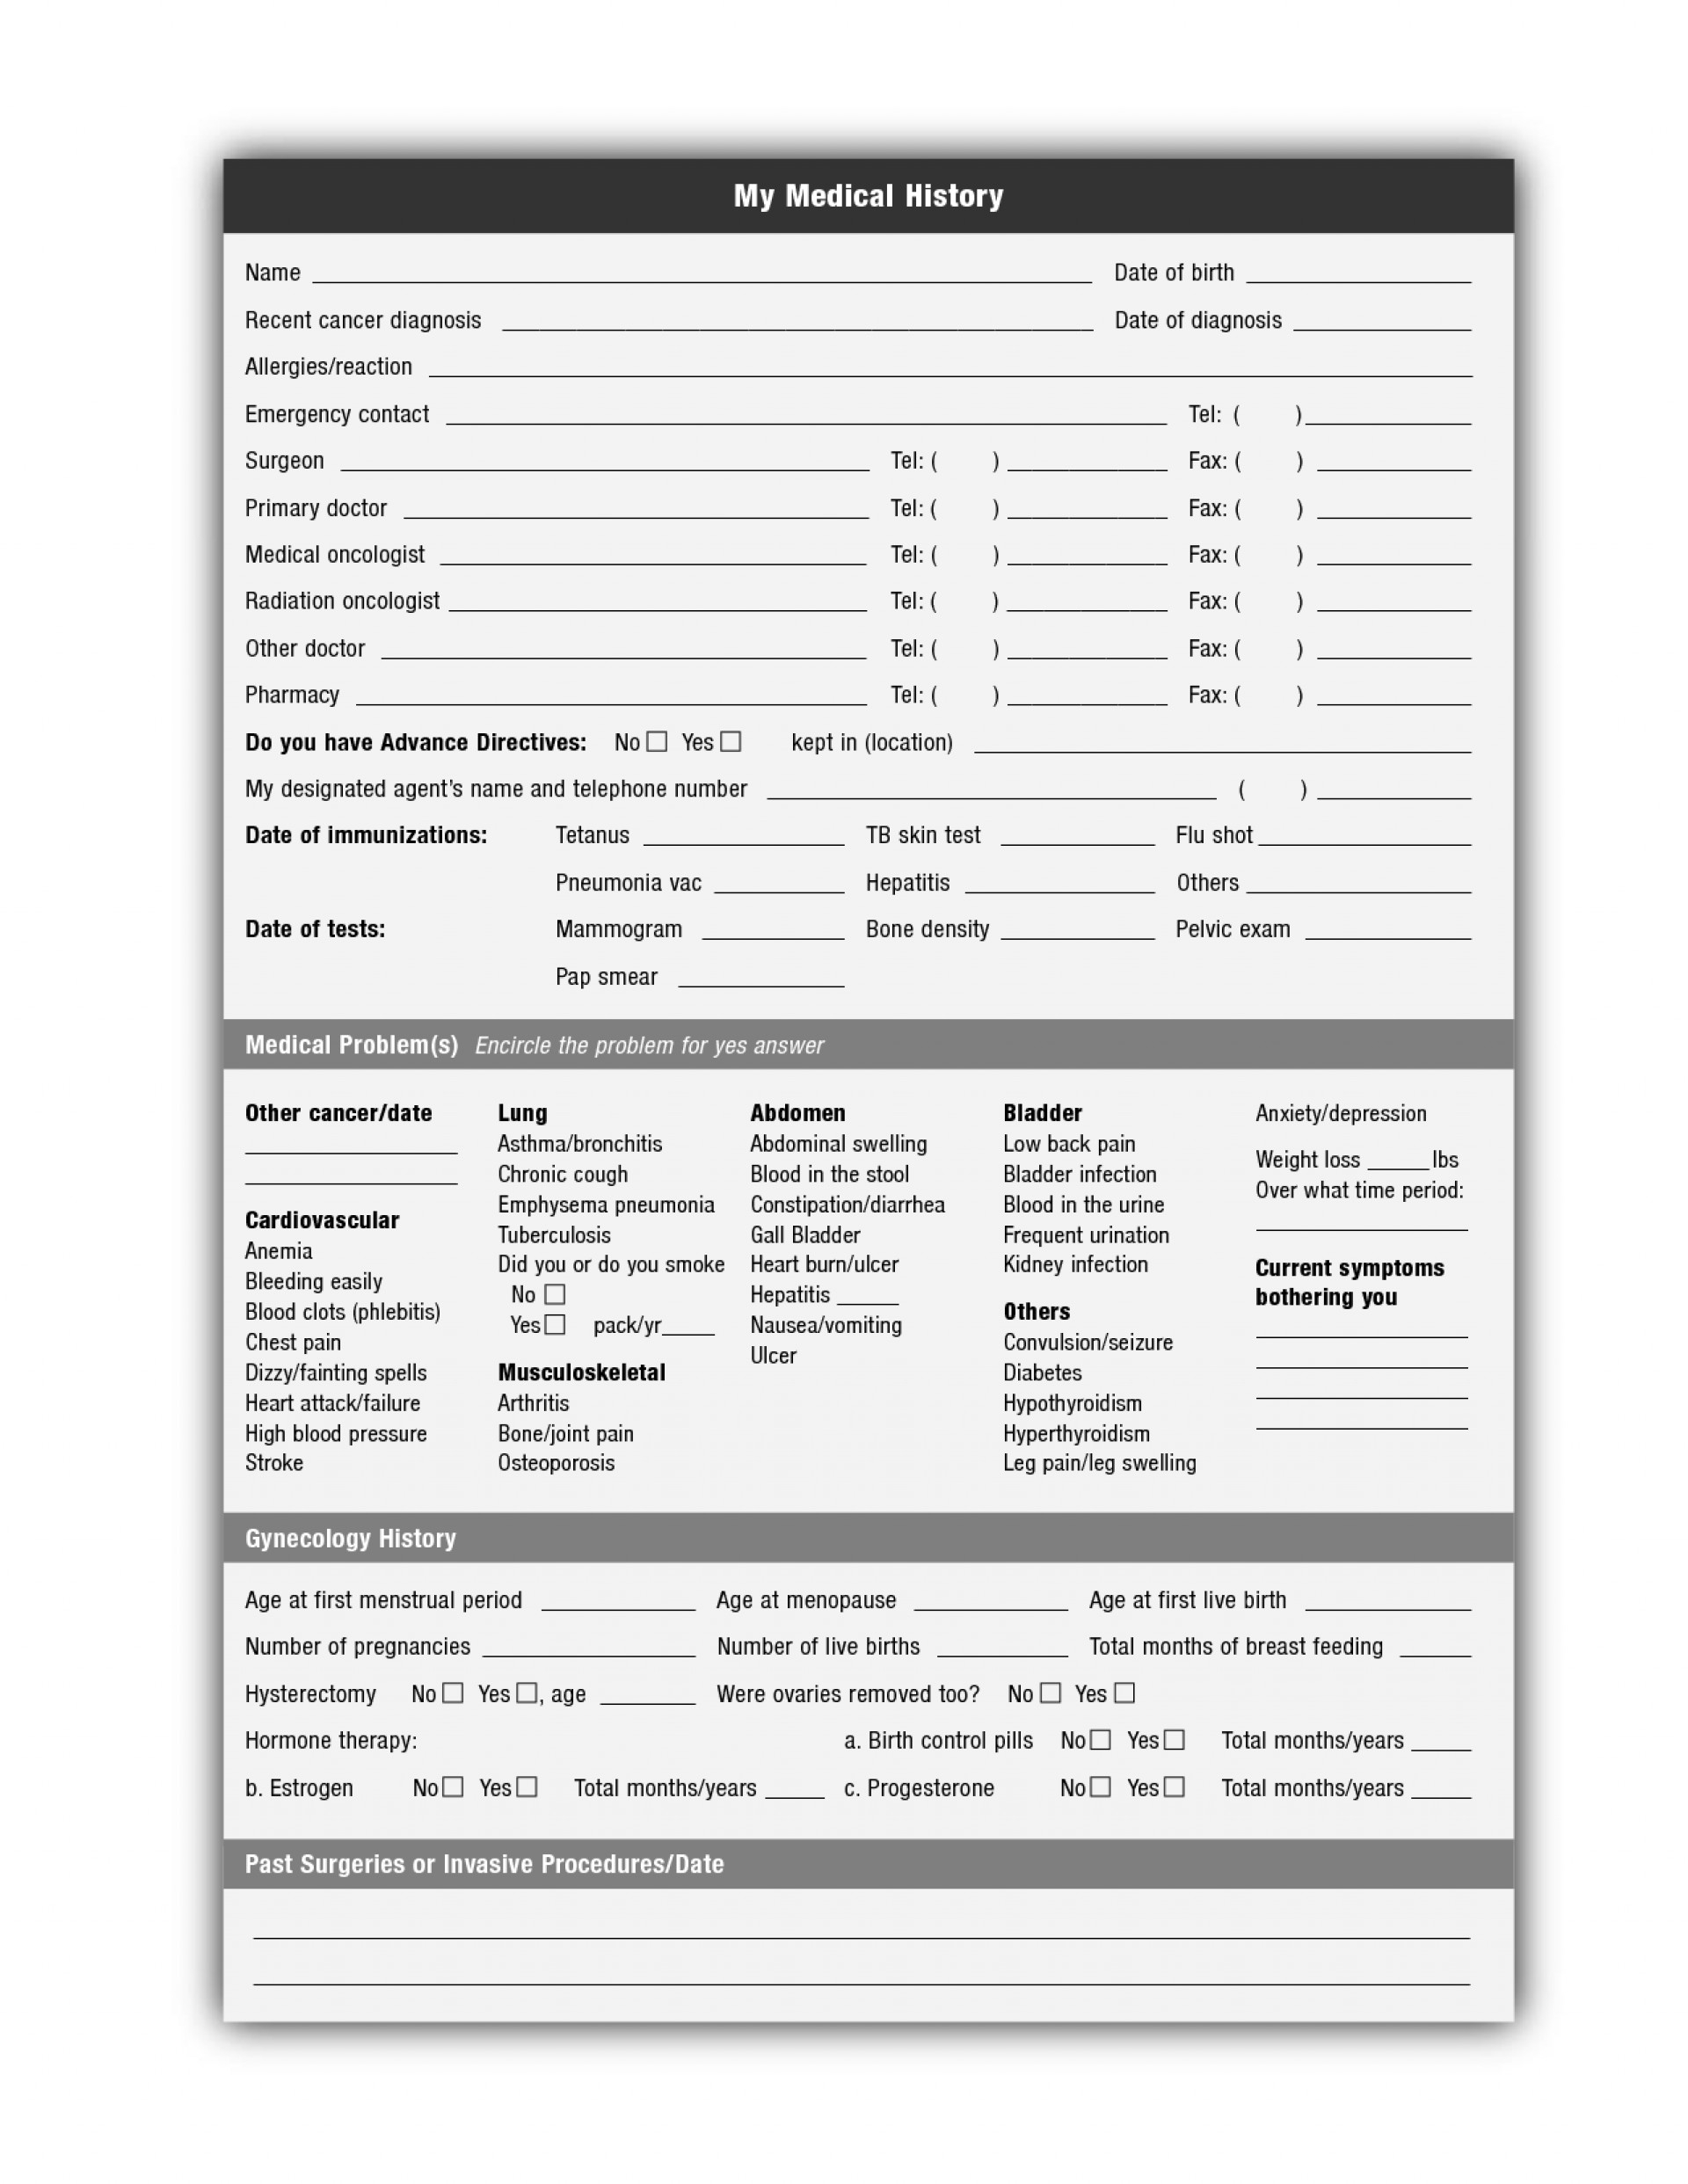 018 Template Ideas Free Printable Medical History Forms 142171 - Free Printable Medical History Forms